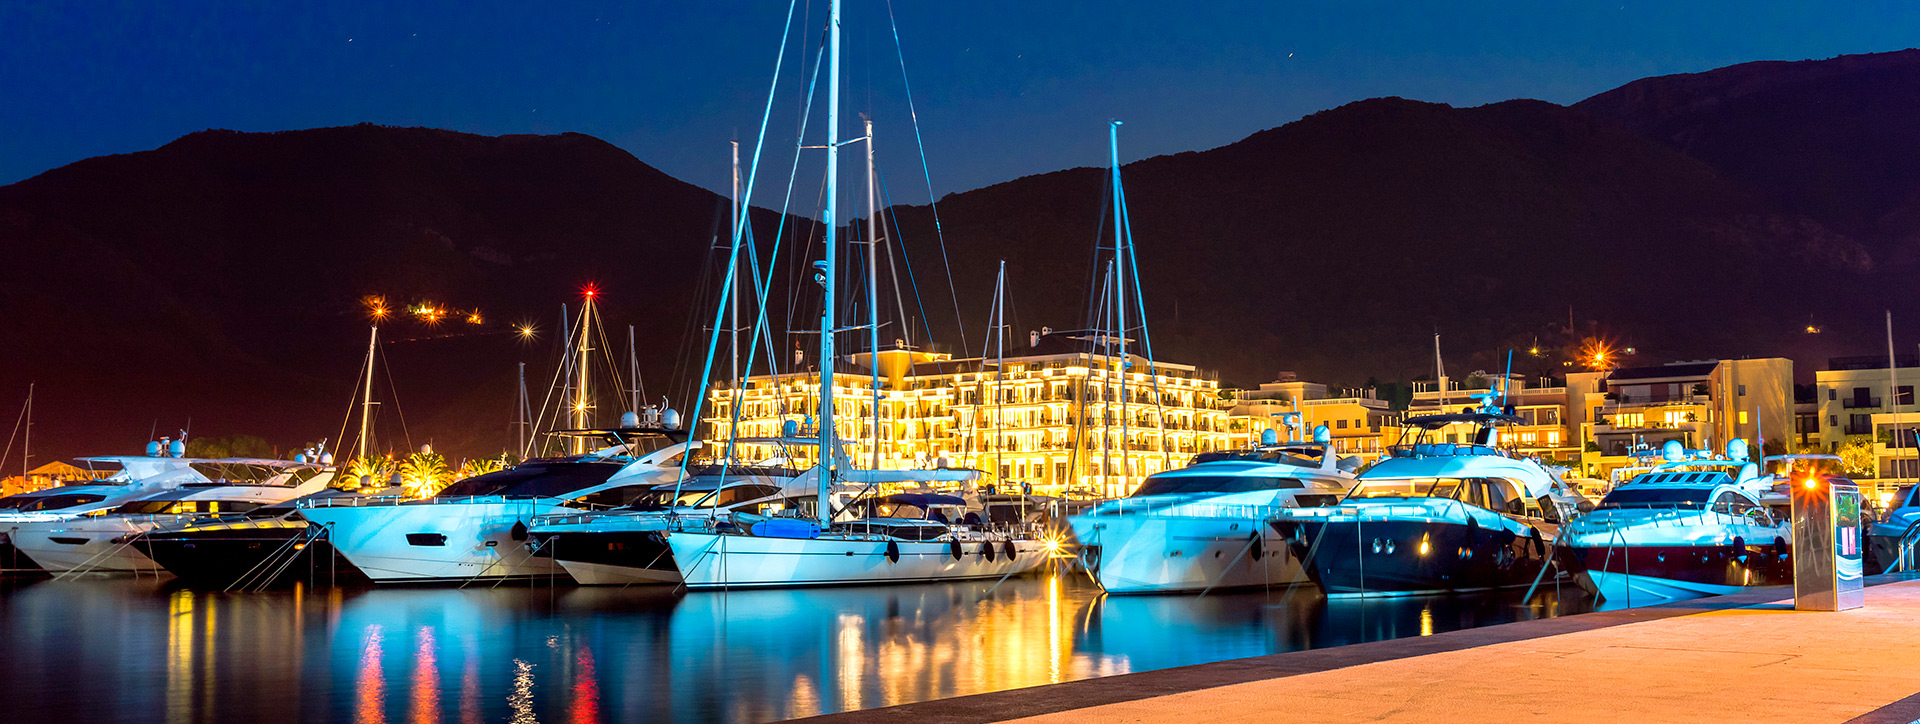 Porto Montenegro at night, Tivat, Montenegro